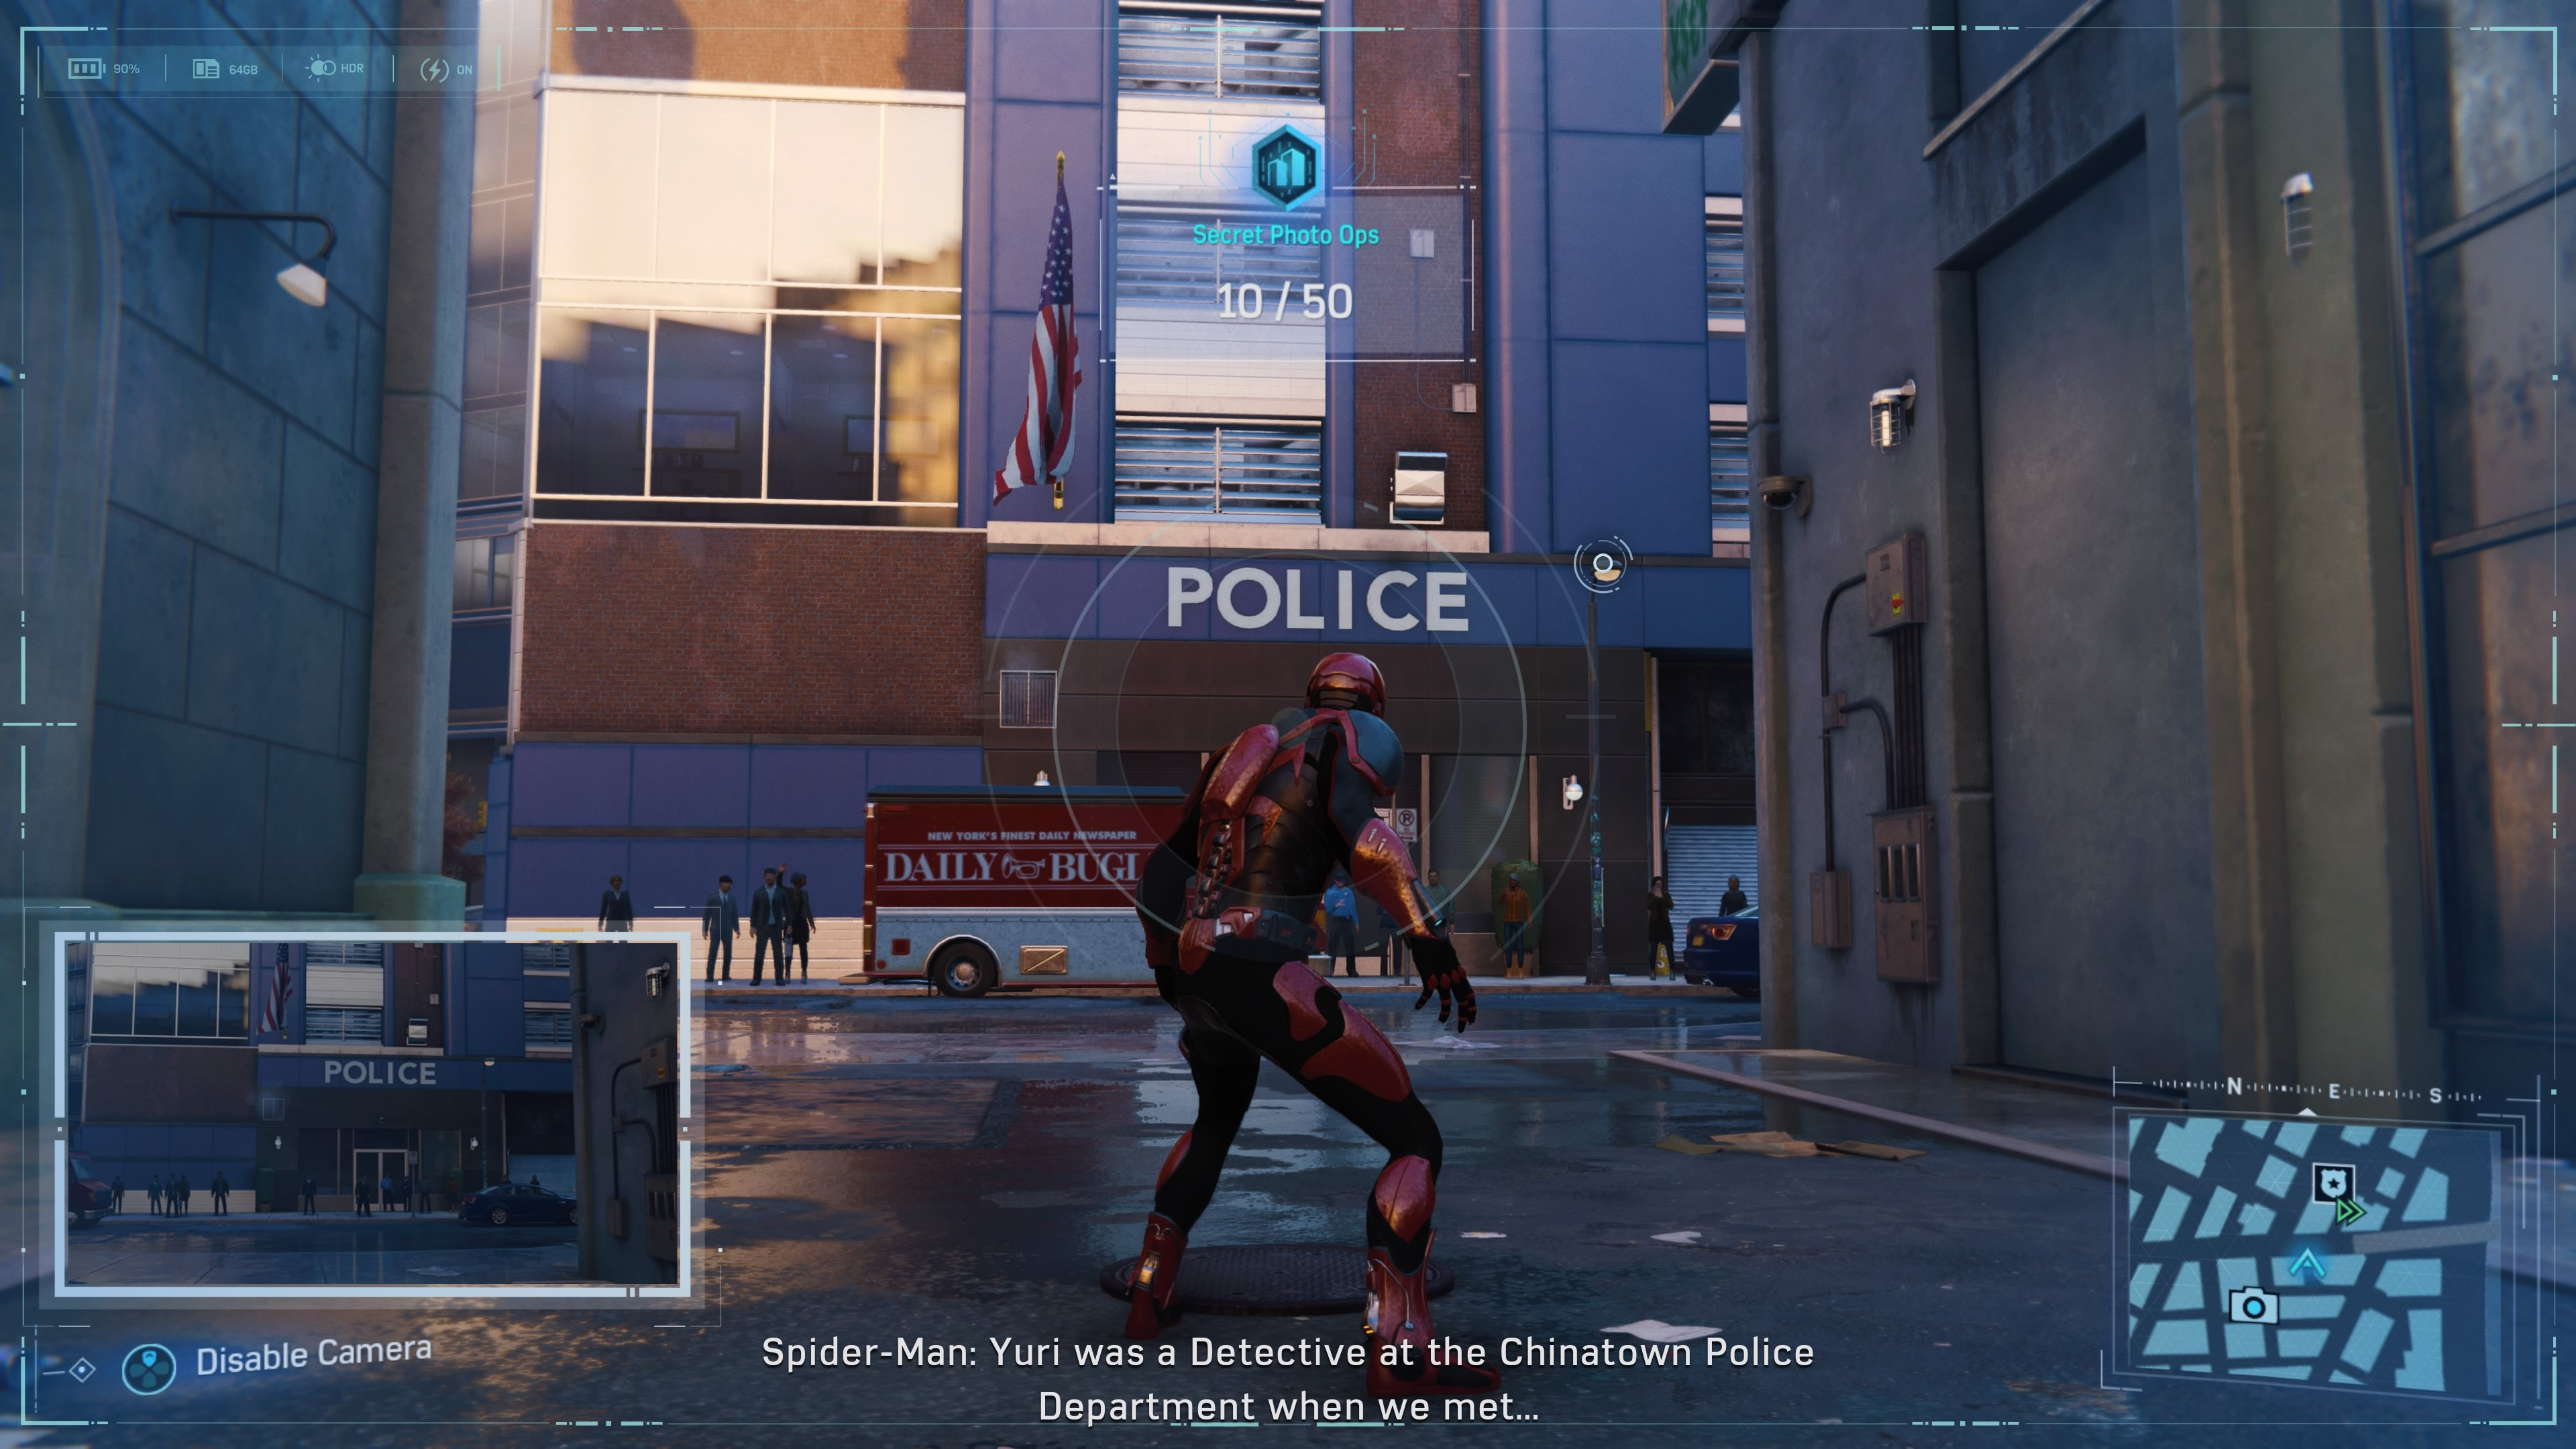 SpiderMan PS4  All Chinatown Secret Photo Ops  Guide  Push Square